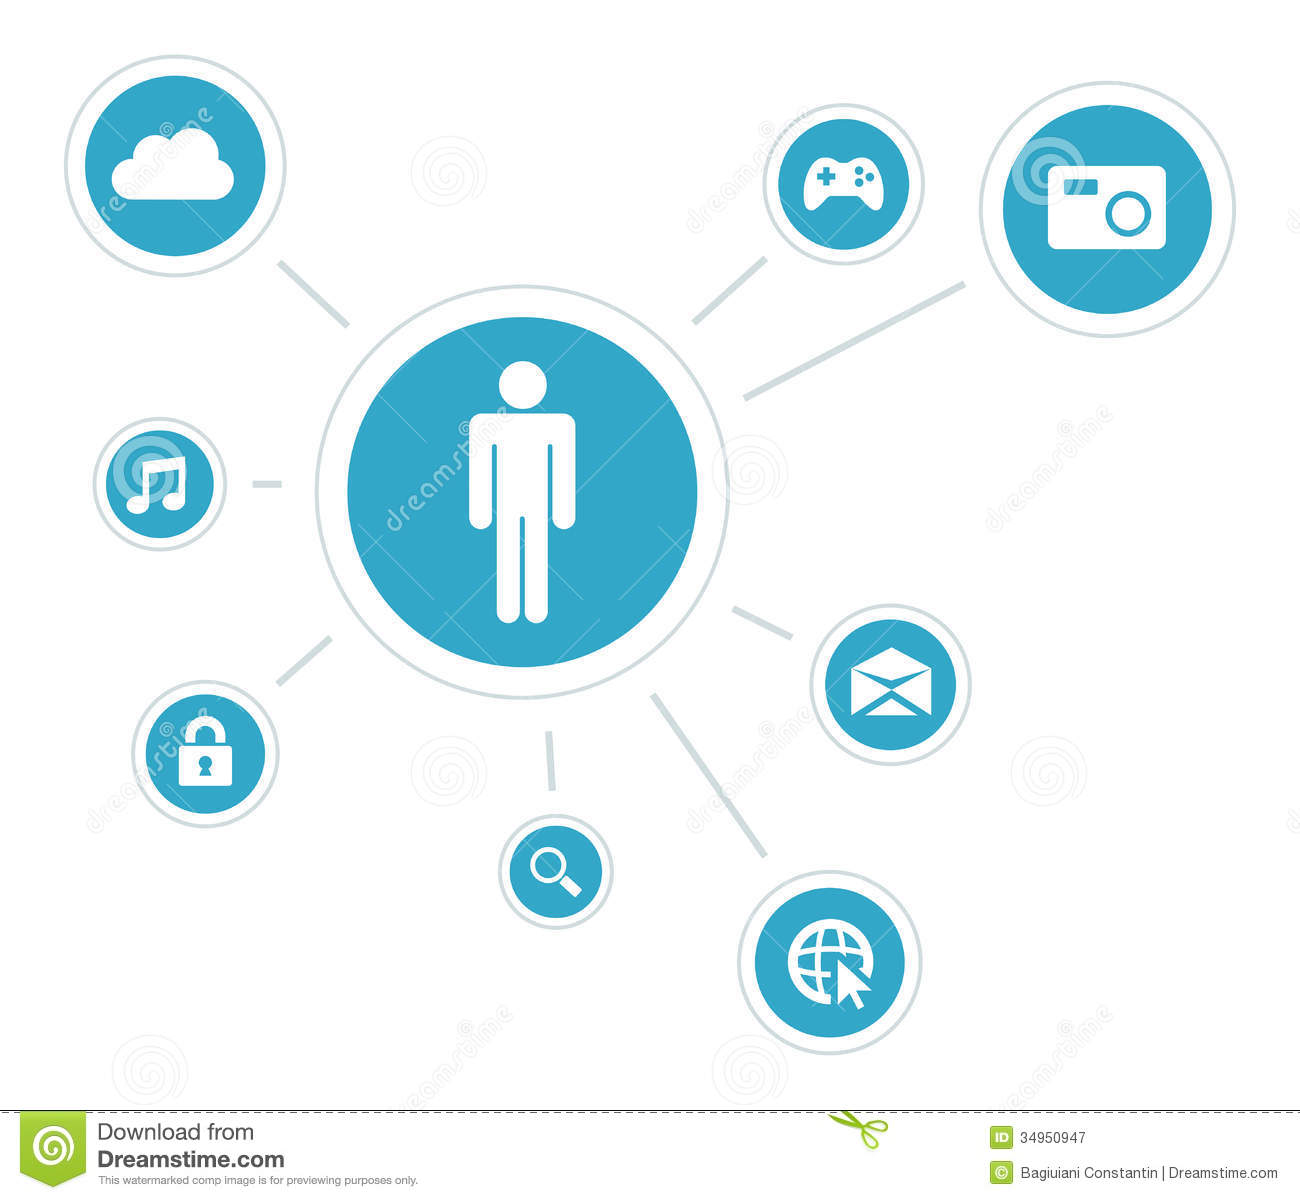 User Centered Design Royalty Free Stock Images - Image: 27300049